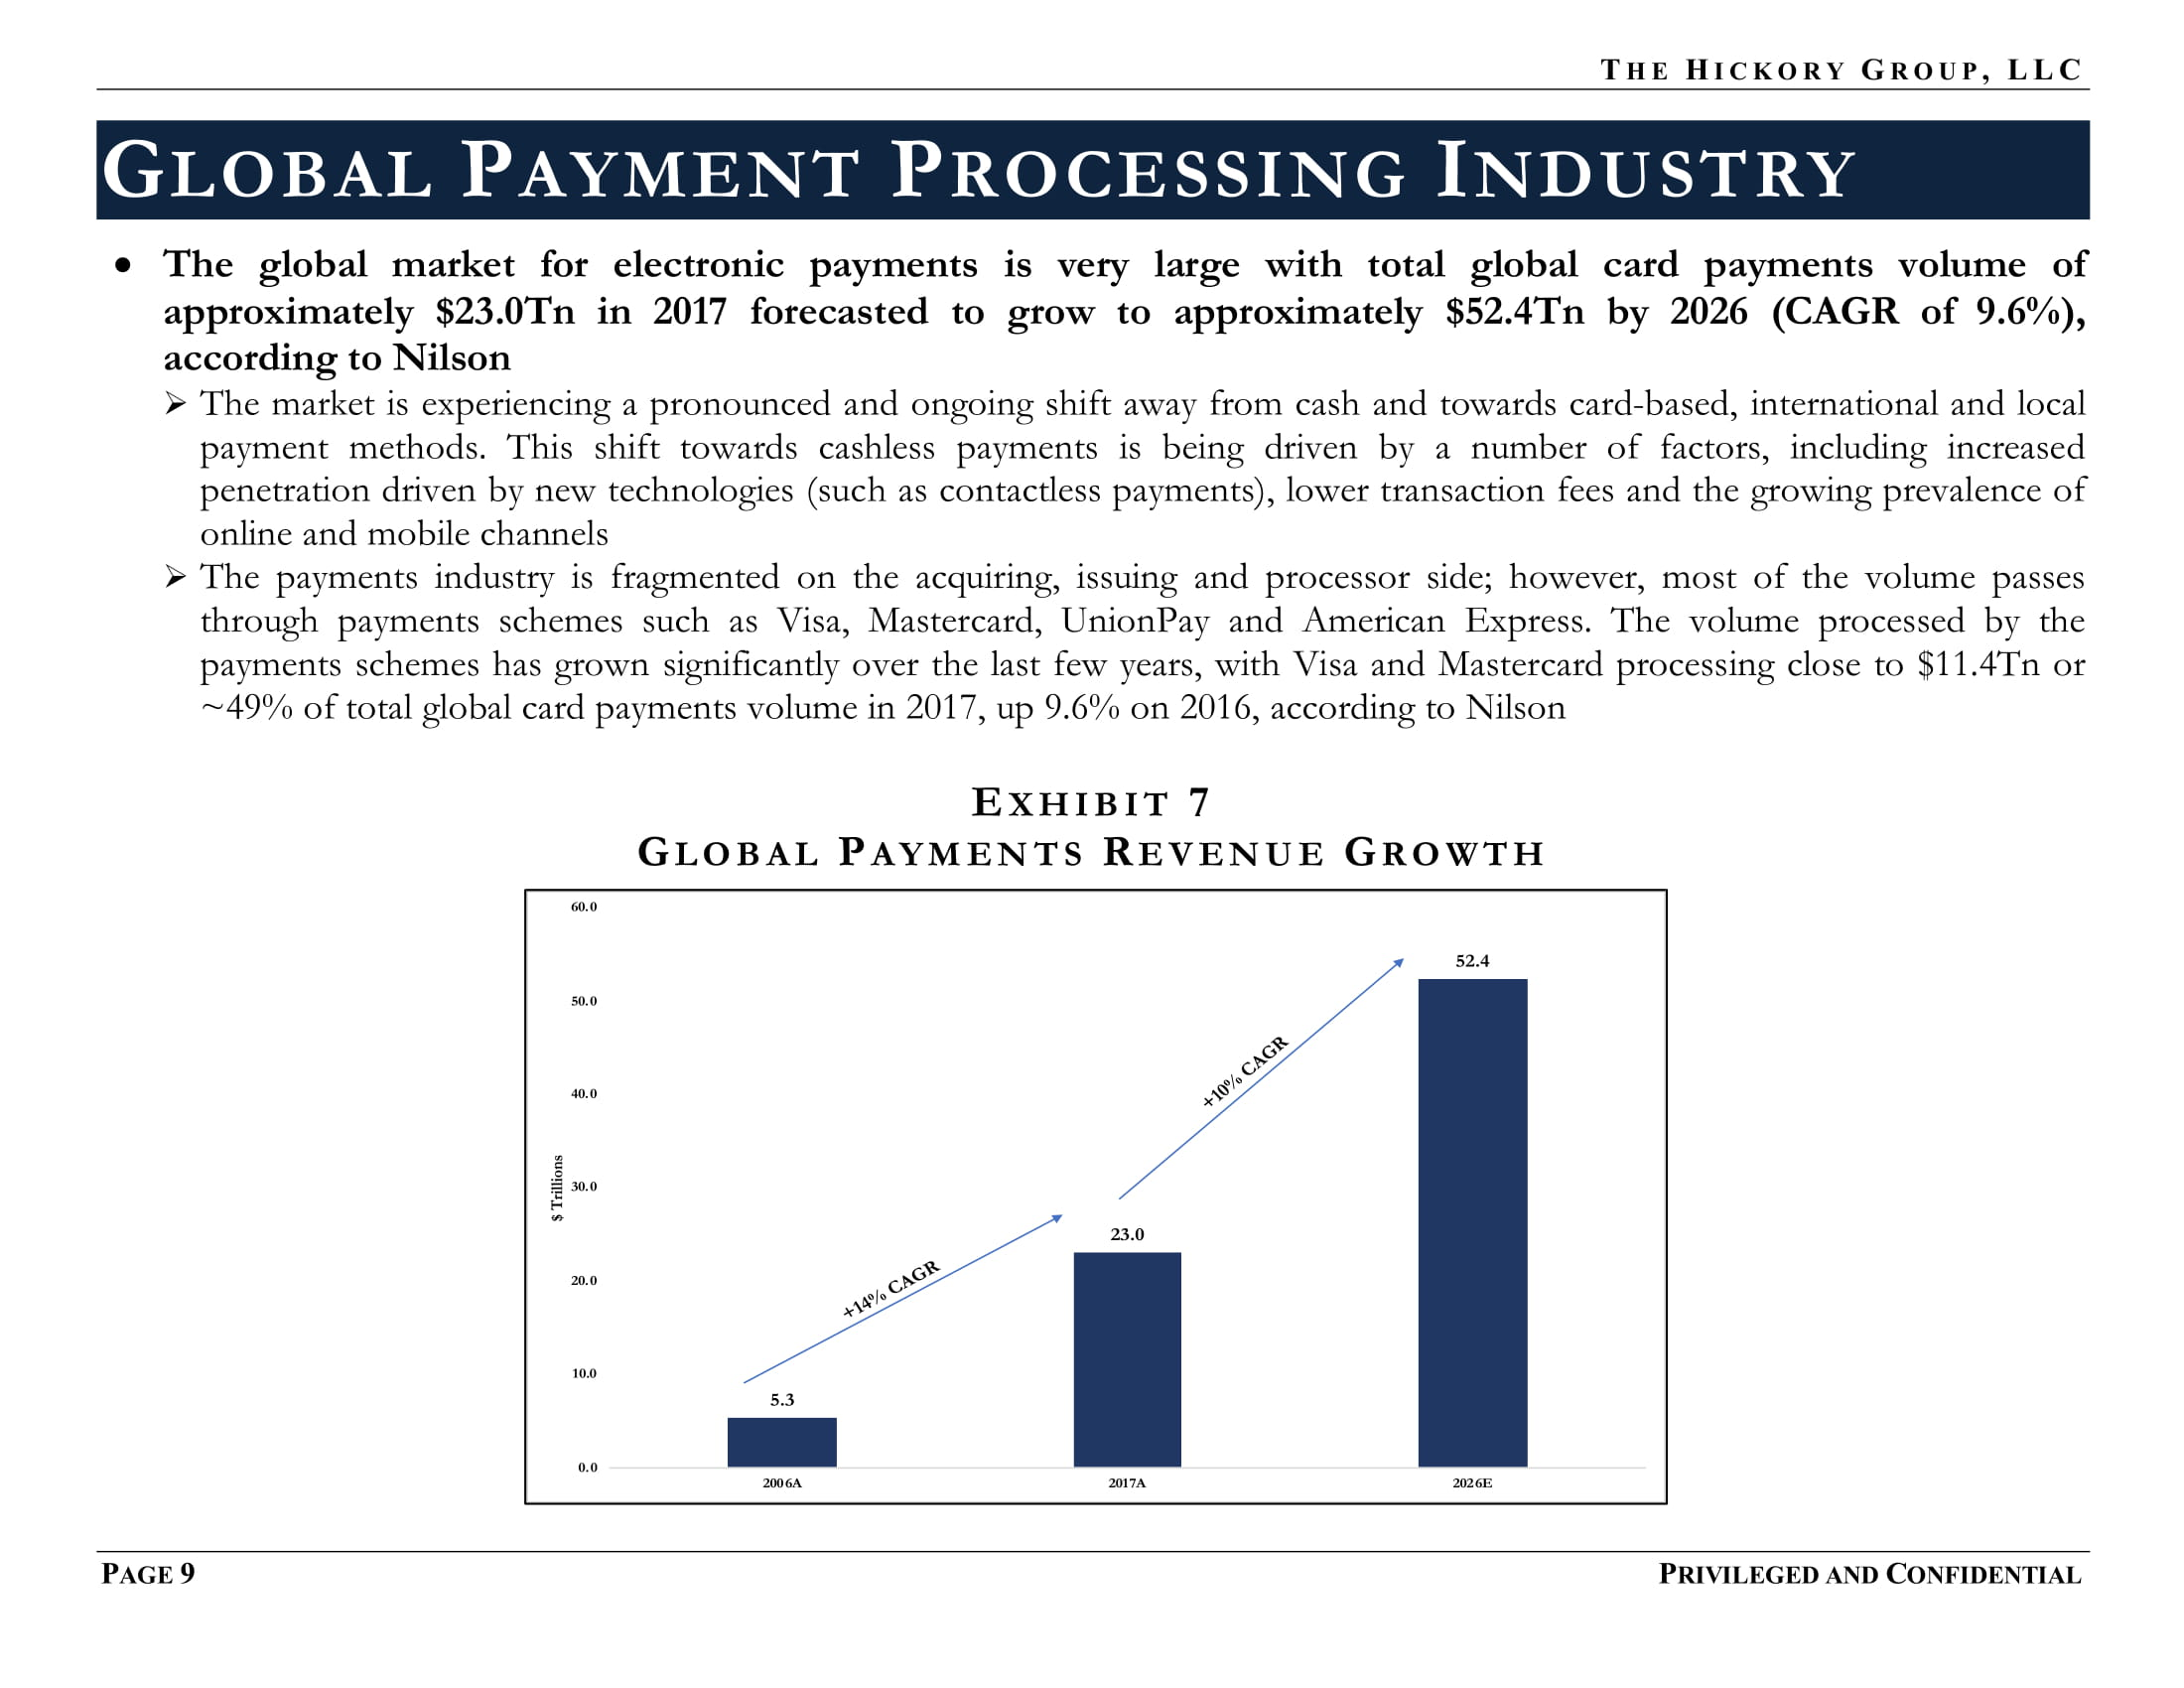 FINAL_THG FinTech Industry - Payment Processing Sector Flash Report (27 March 2019) Privileged & Confidential-15.jpg